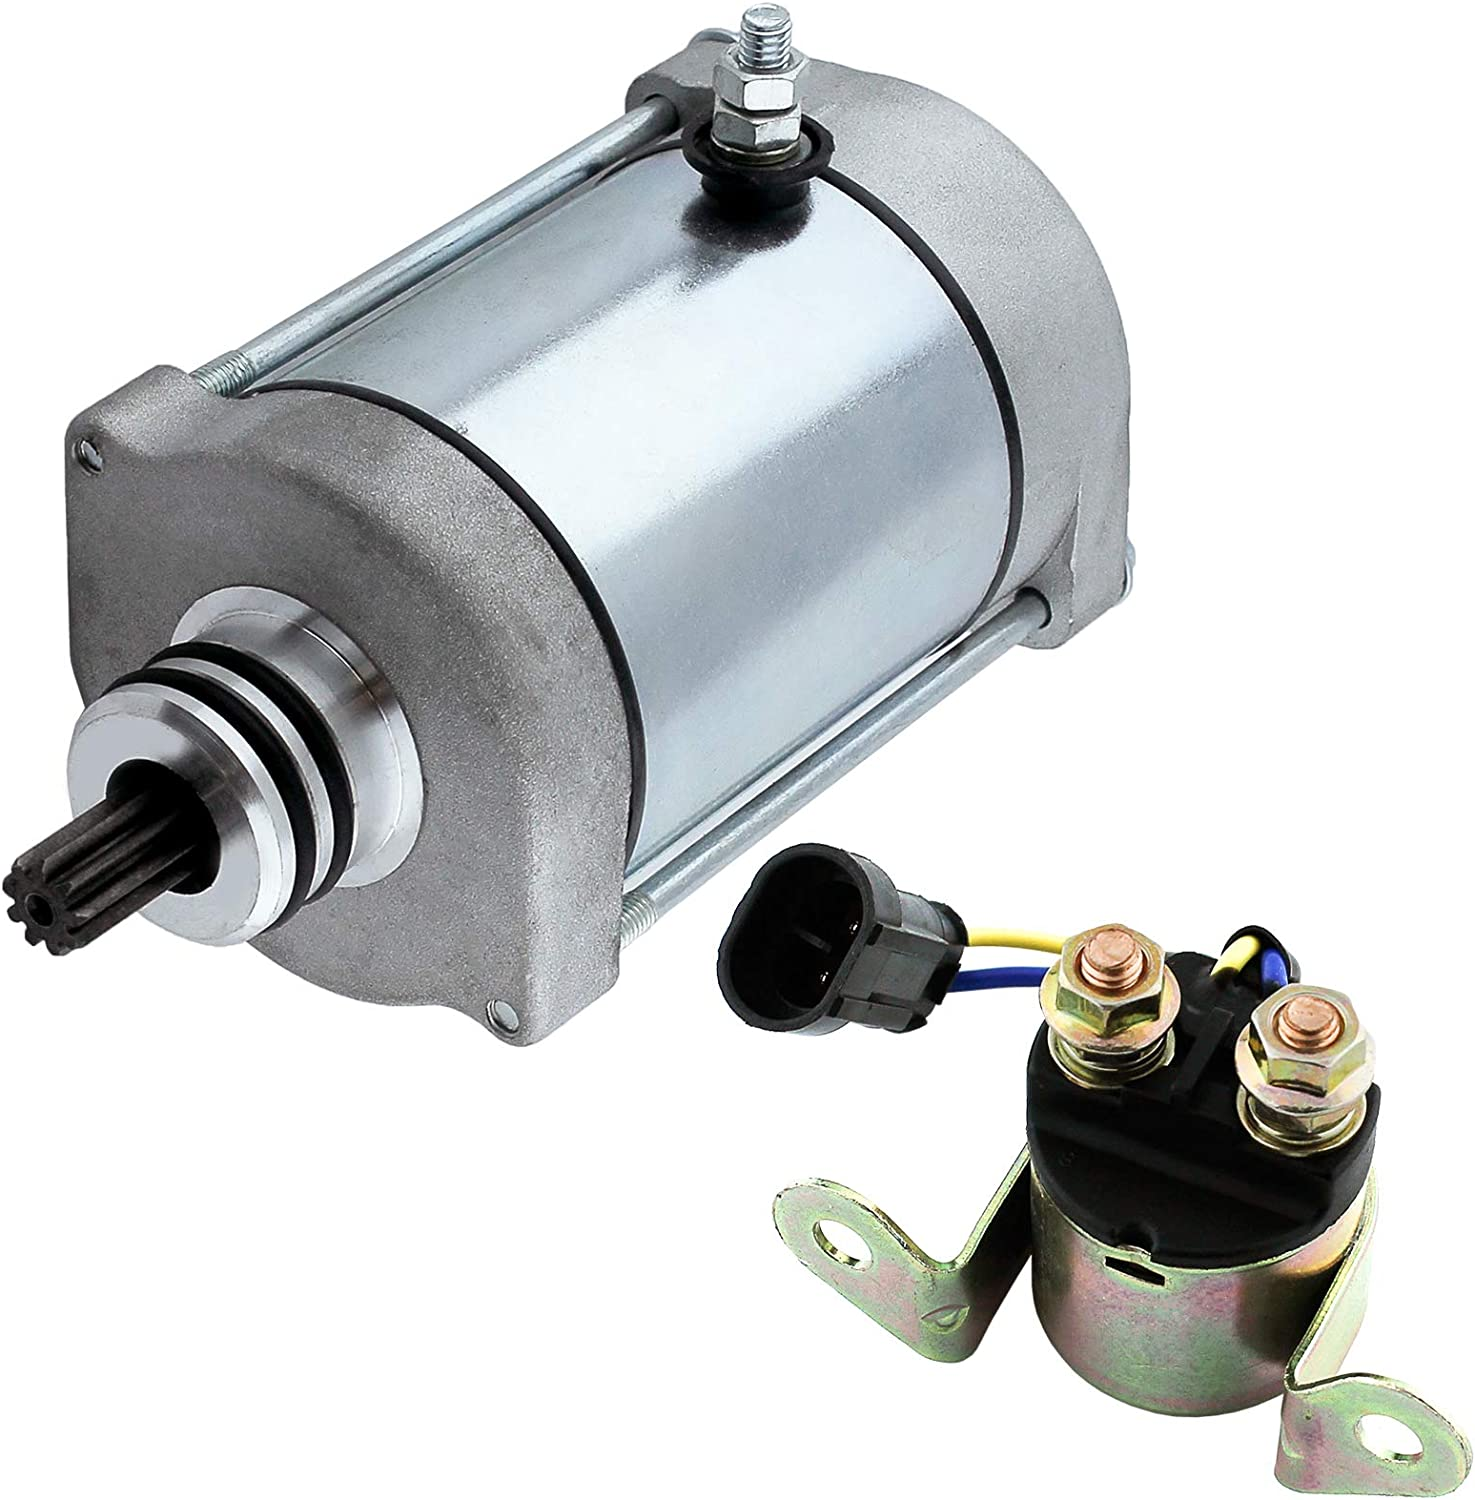 Caltric Starter W Relay Solenoid Compatible With 8 S service safety Rzr Polaris